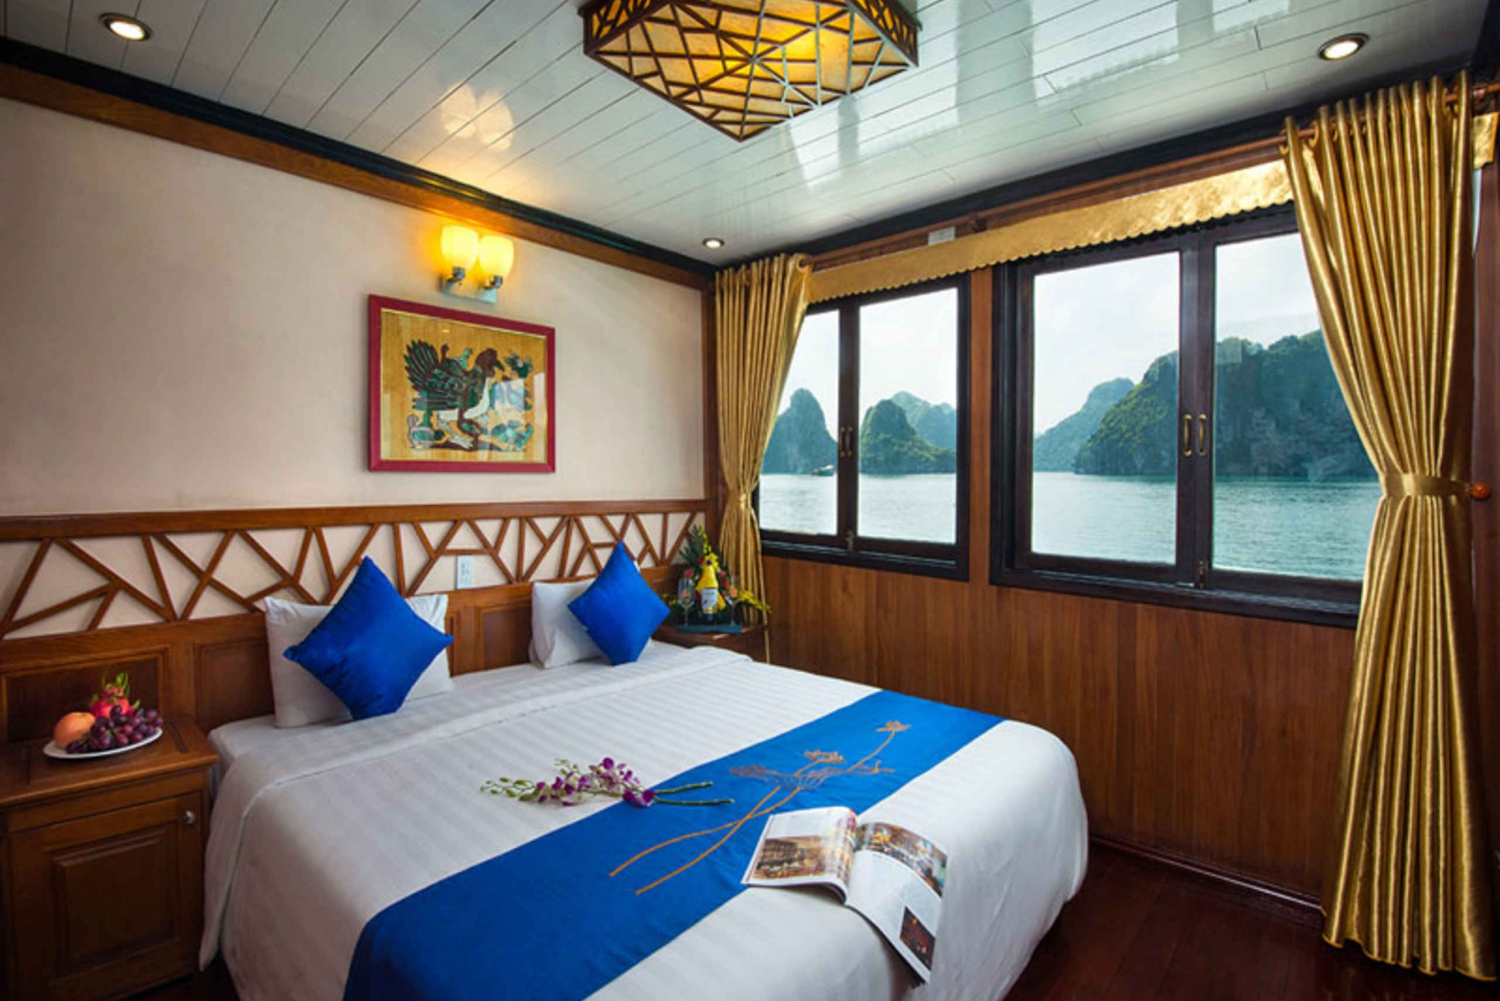 Gray Line Halong Cruise: 2 Days 1 Night Exploring the Bay